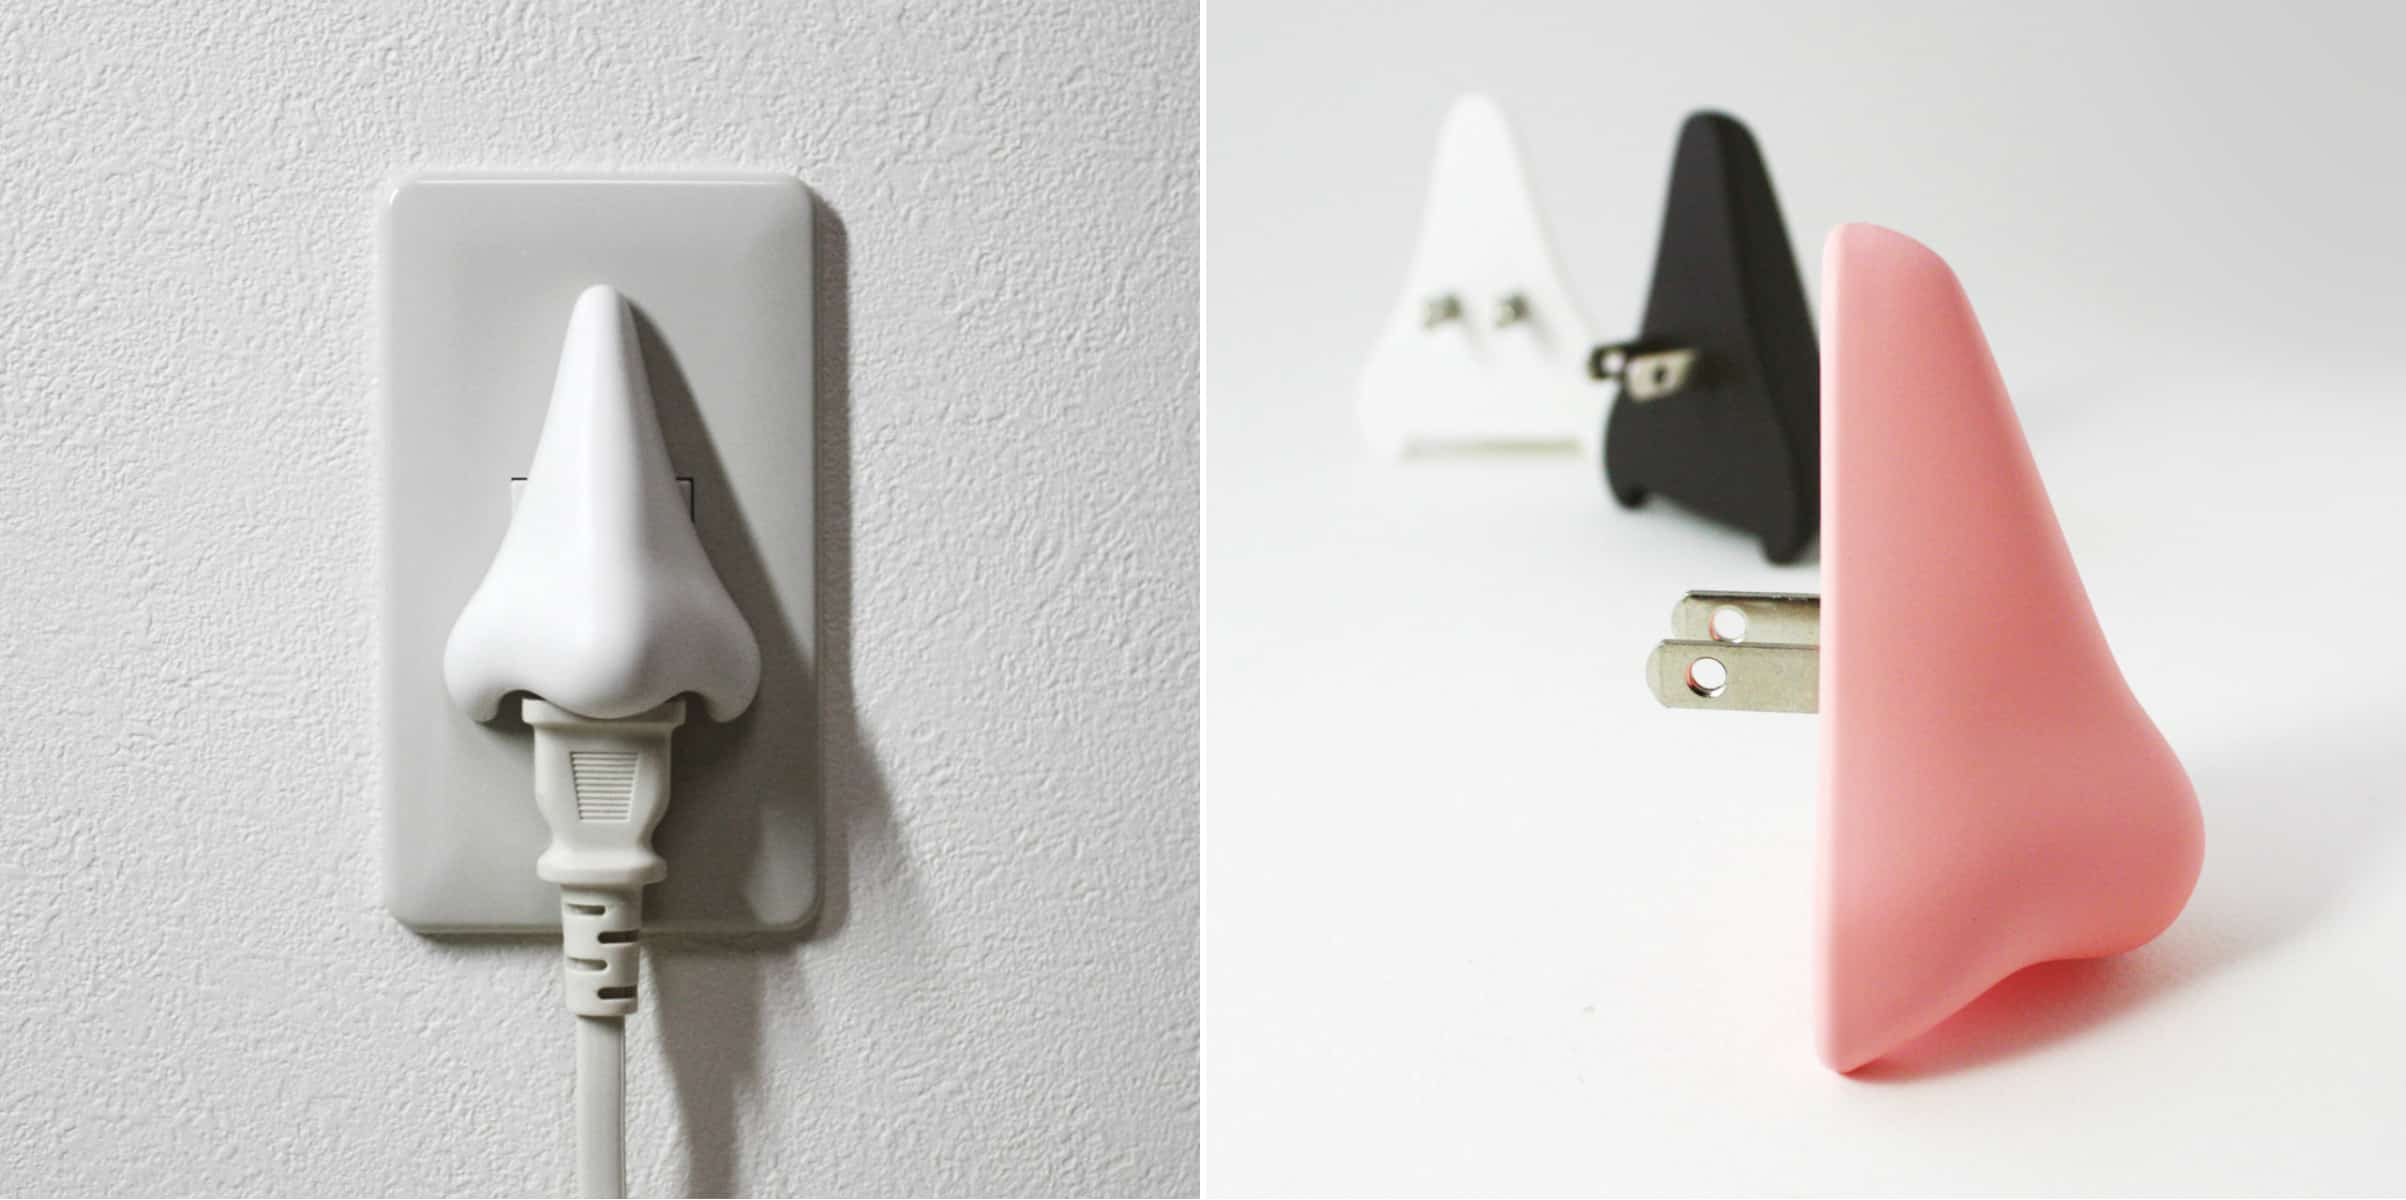 Cool Electrical Outlets Hanaga Tap Nose Power Outlet Cool Stuff To Buy Noveltystreet